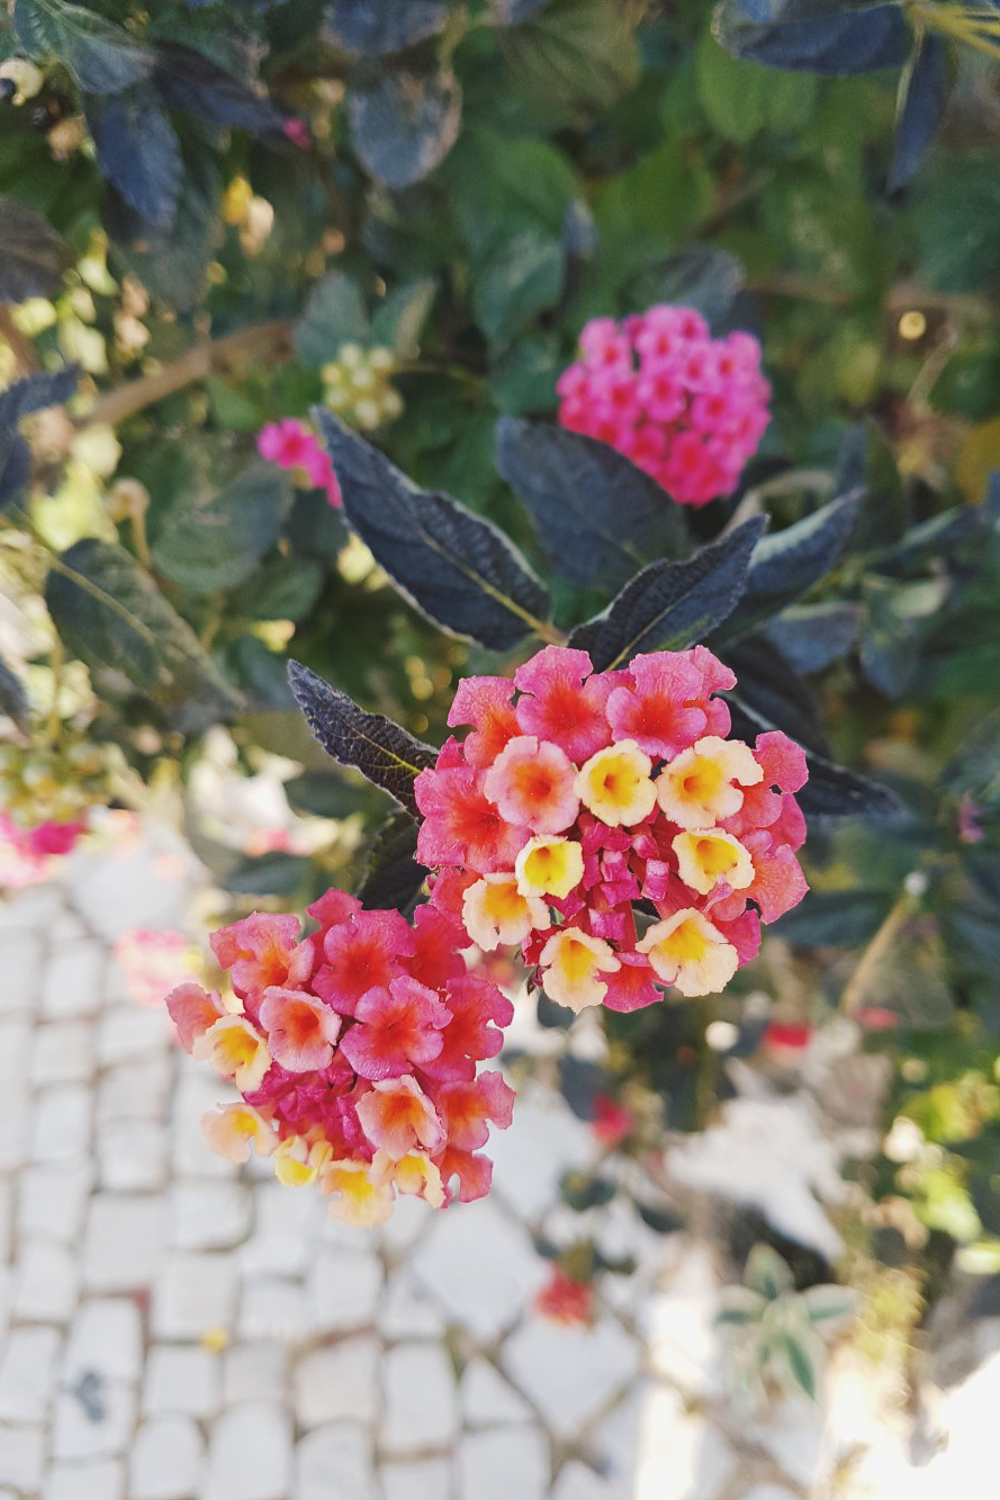 Spring flowers in Lagos, Portugal